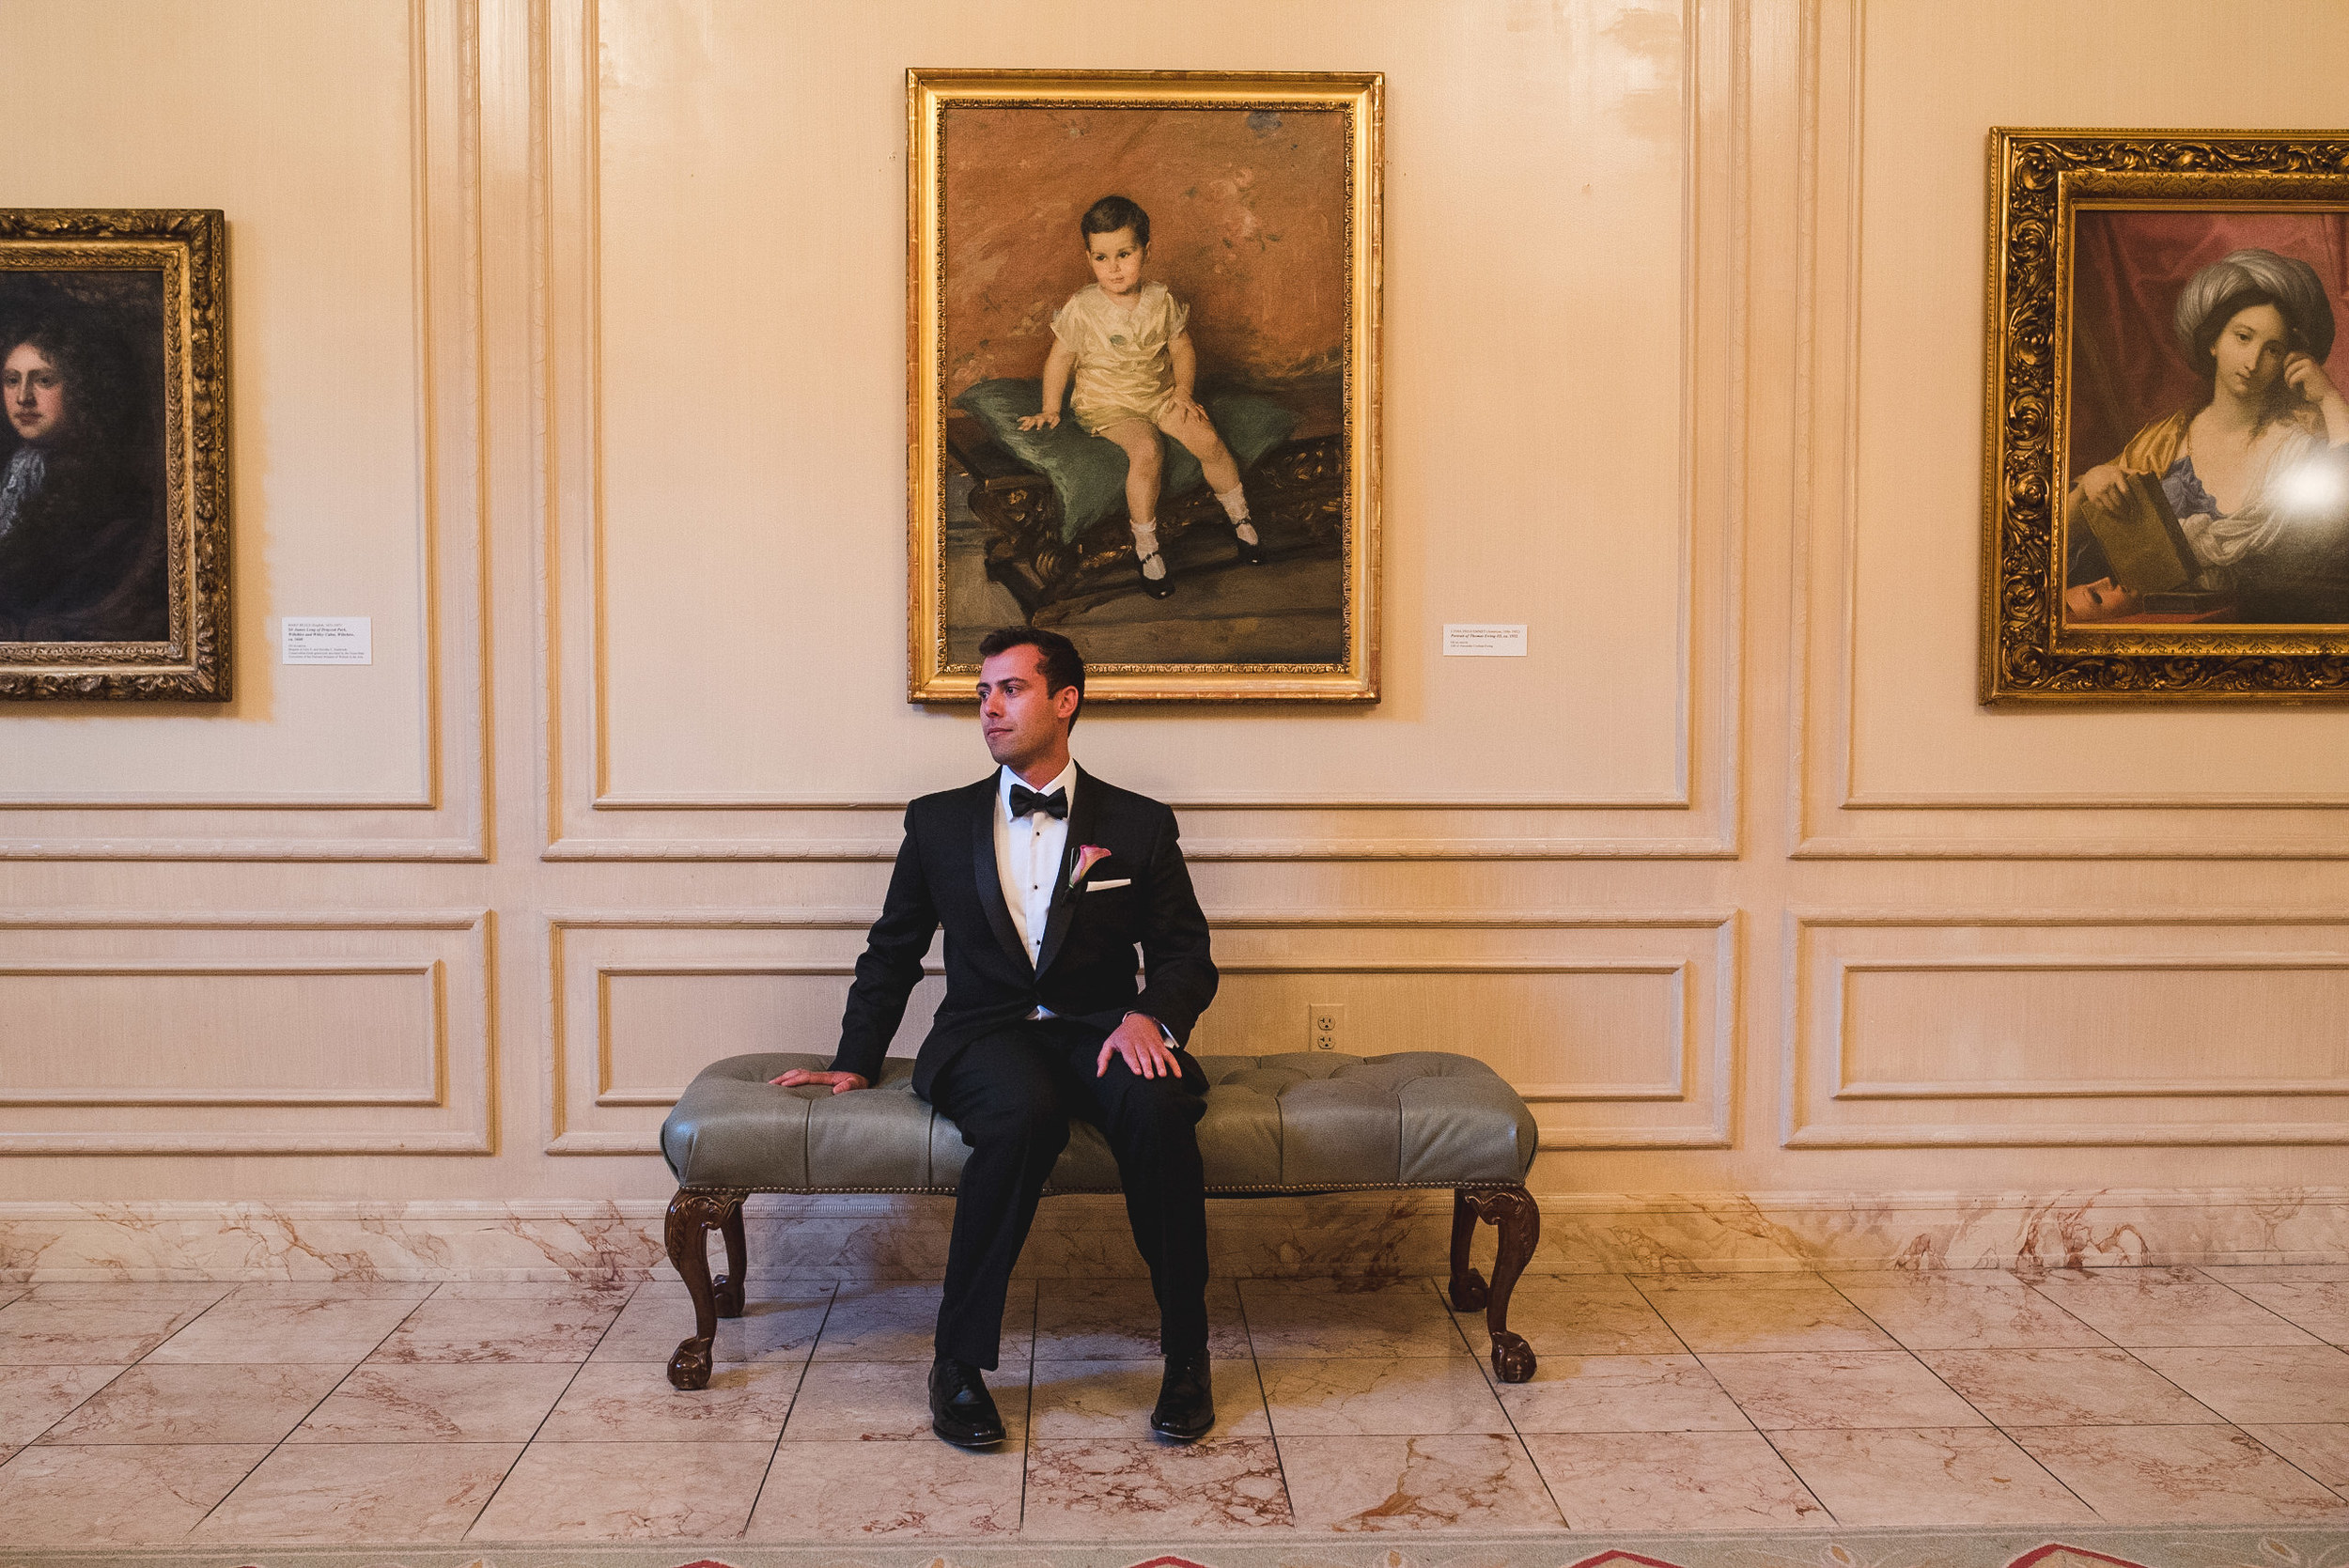 Wedding at National Museum of Women in the Arts by Photographer Mantas Kubilinskas-19.jpg